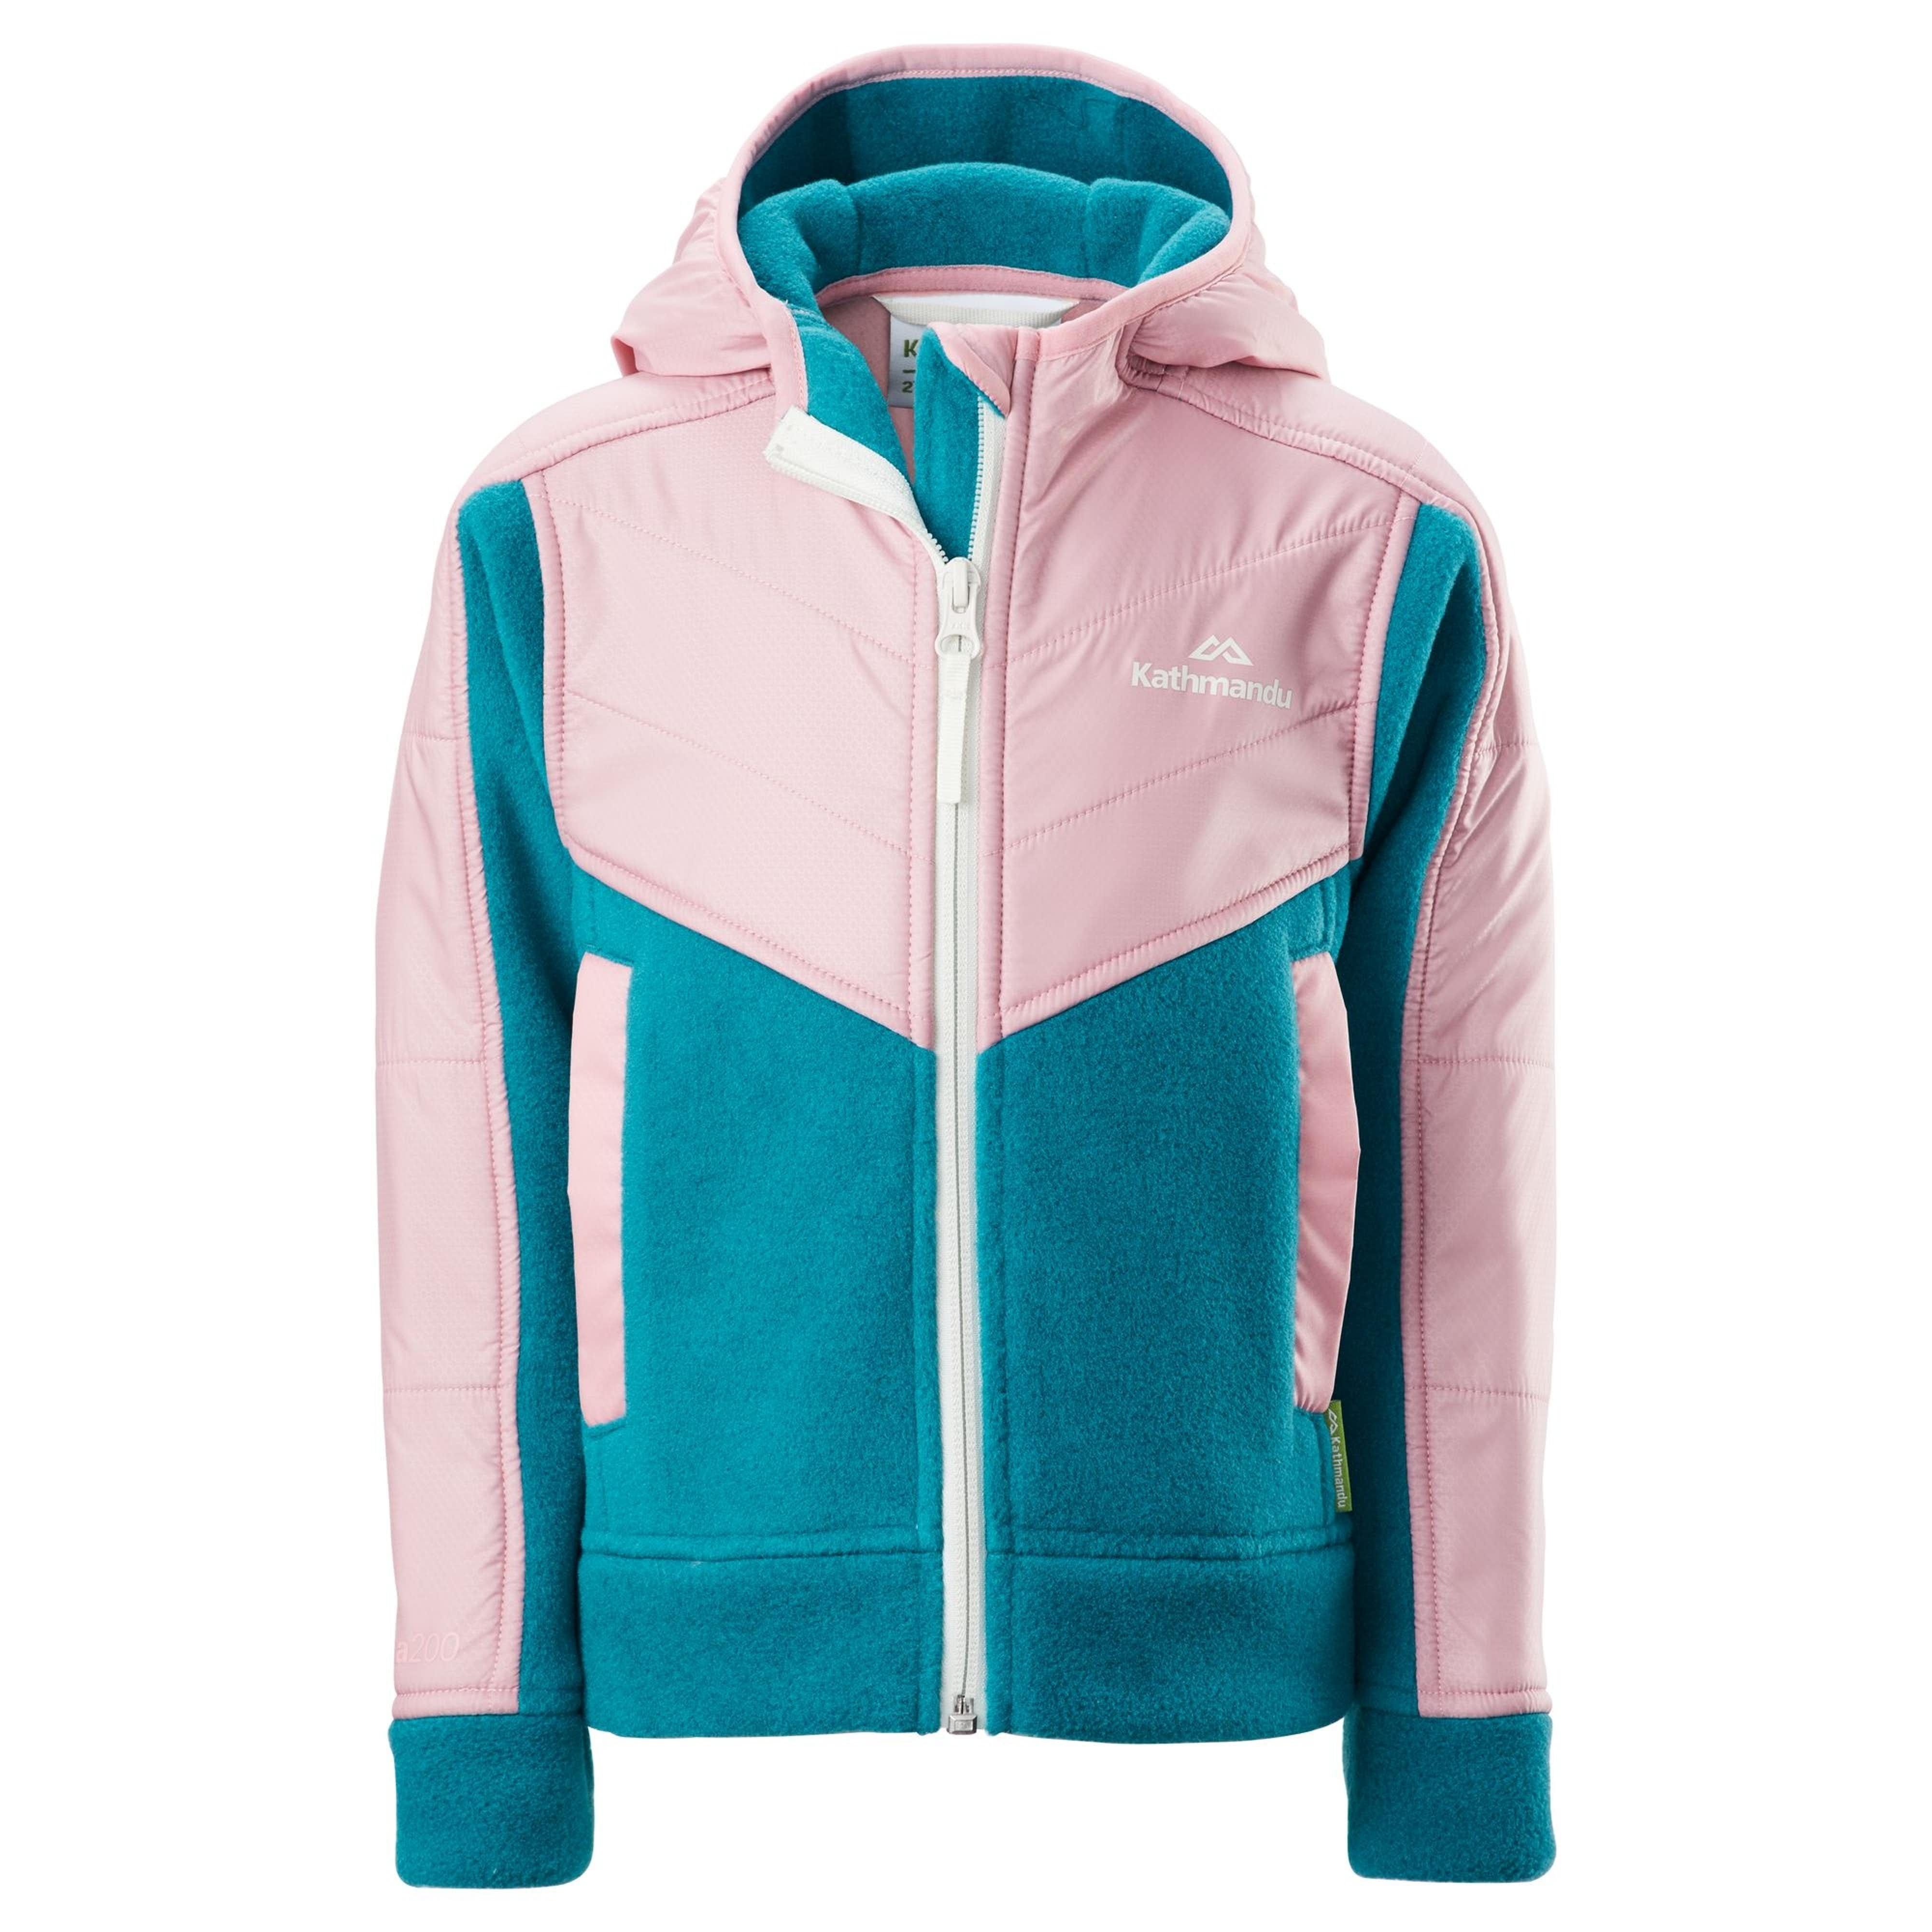 eabeccf79298 Clearance of Kids  Outdoor Clothing   Gear